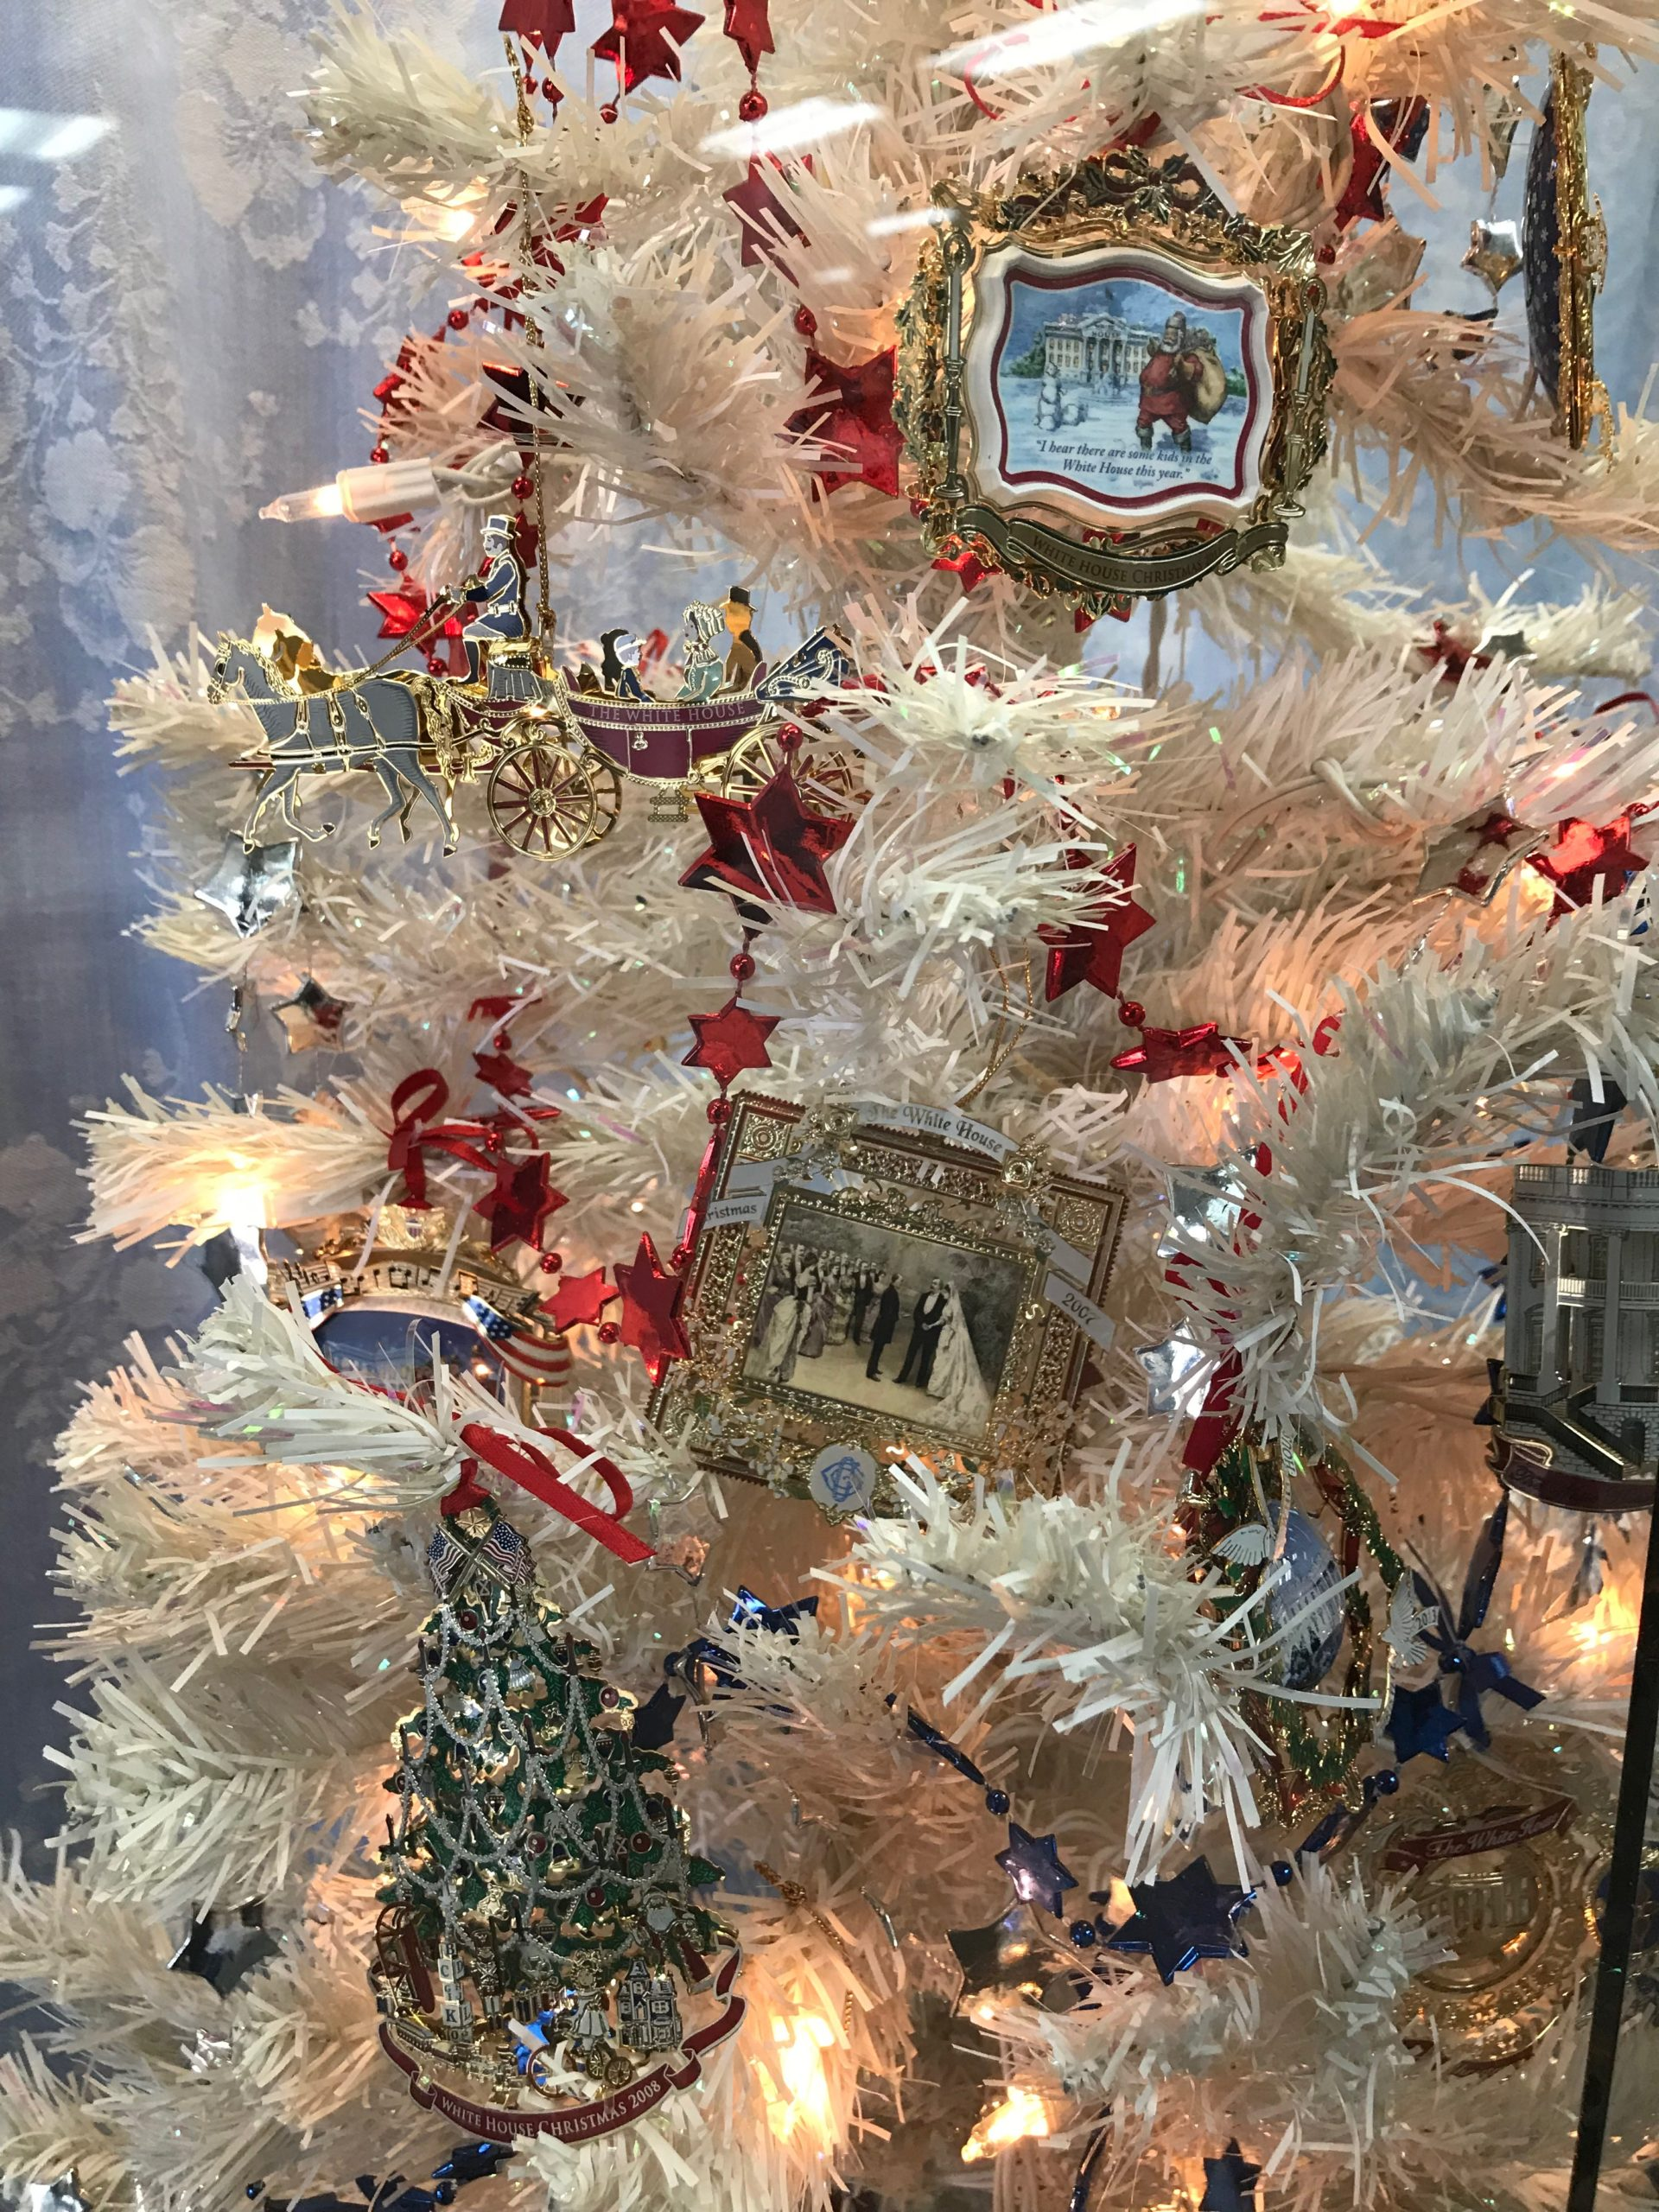 Close-up view of Christmas ornaments, including painted scenes, a wagon and a Christmas tree.